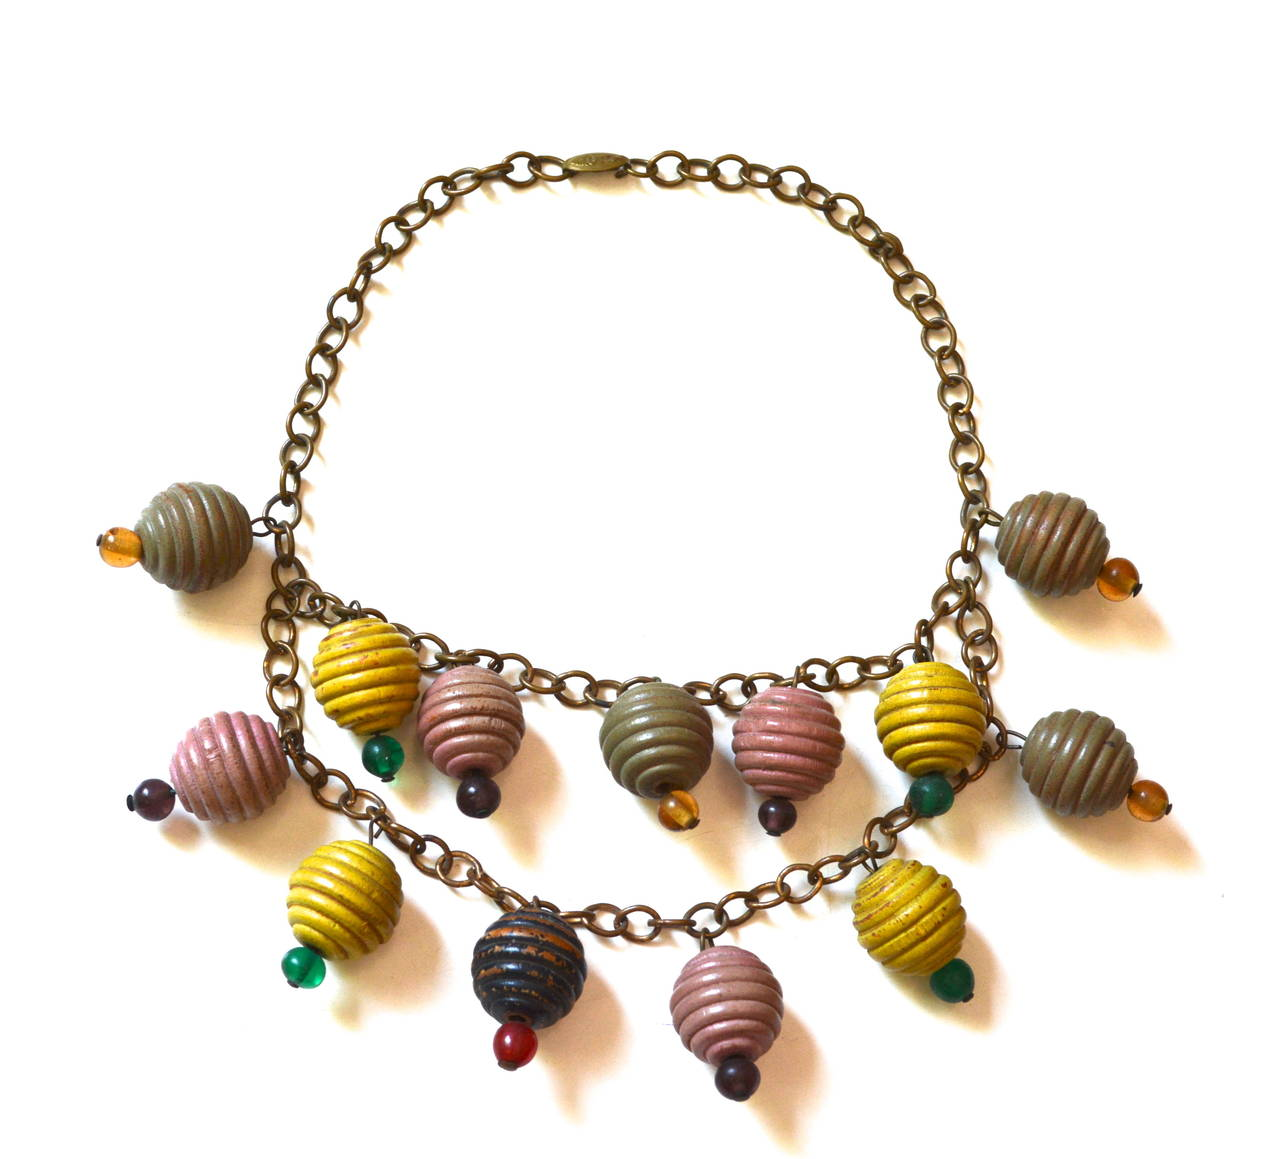 1930s Colorful Wooden Charm Necklace In Excellent Condition For Sale In Litchfield County, CT